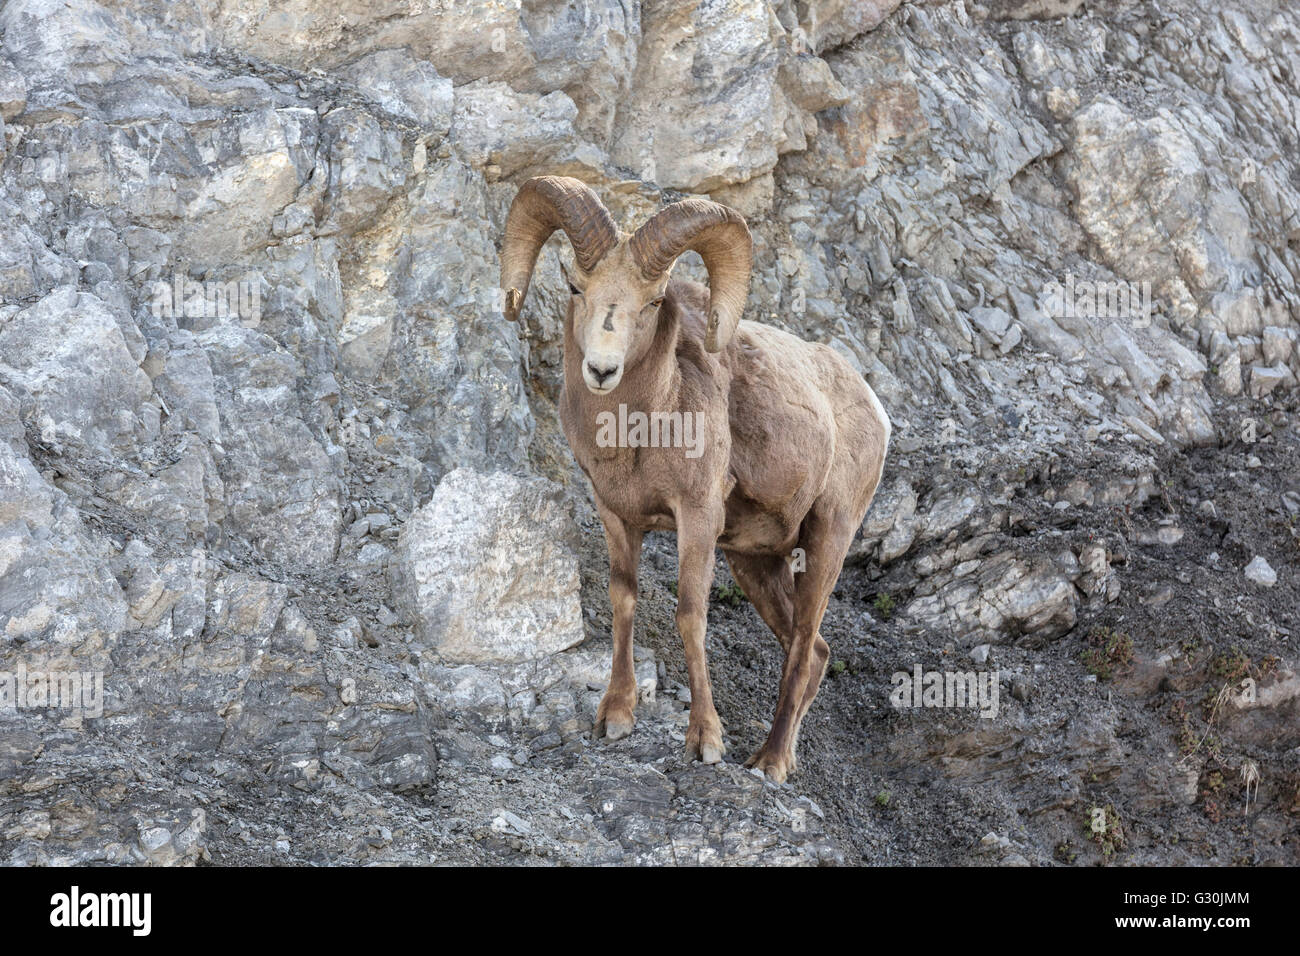 Bighorn Sheep - ram Stock Photo